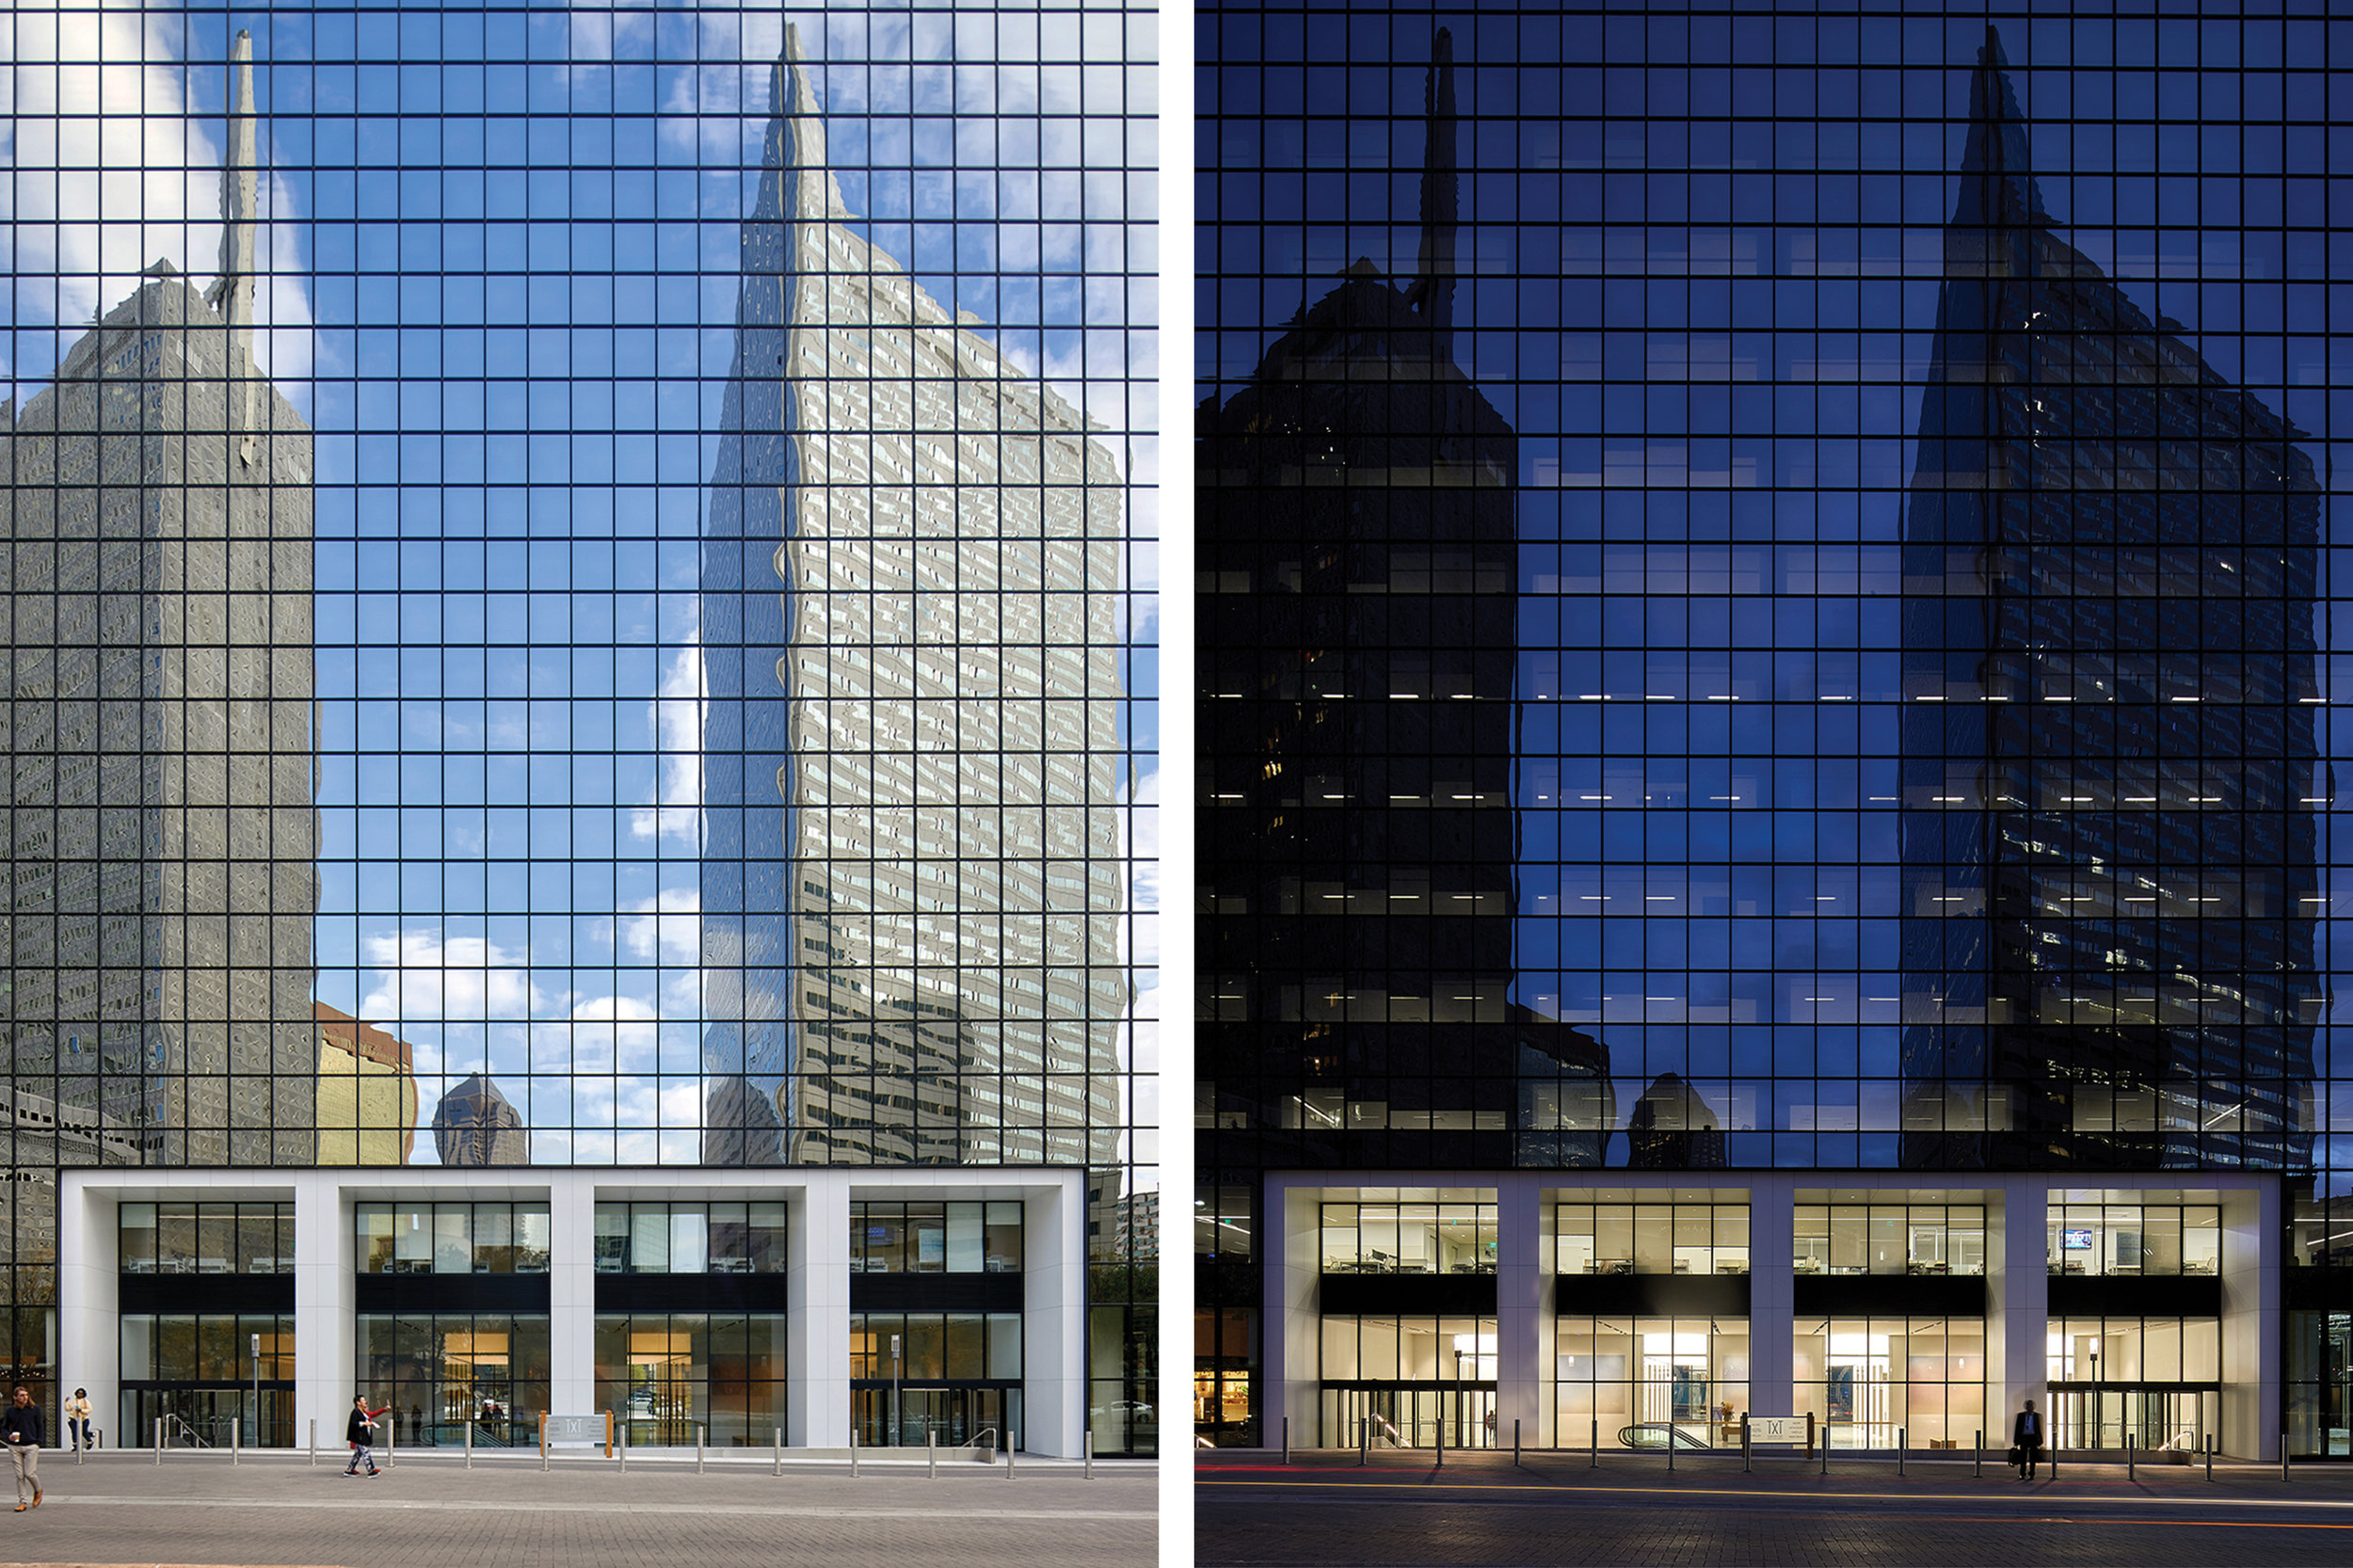 DAY AND NIGHT VIEWS OF ELEVATION FACING THANKSGIVING SQUARE